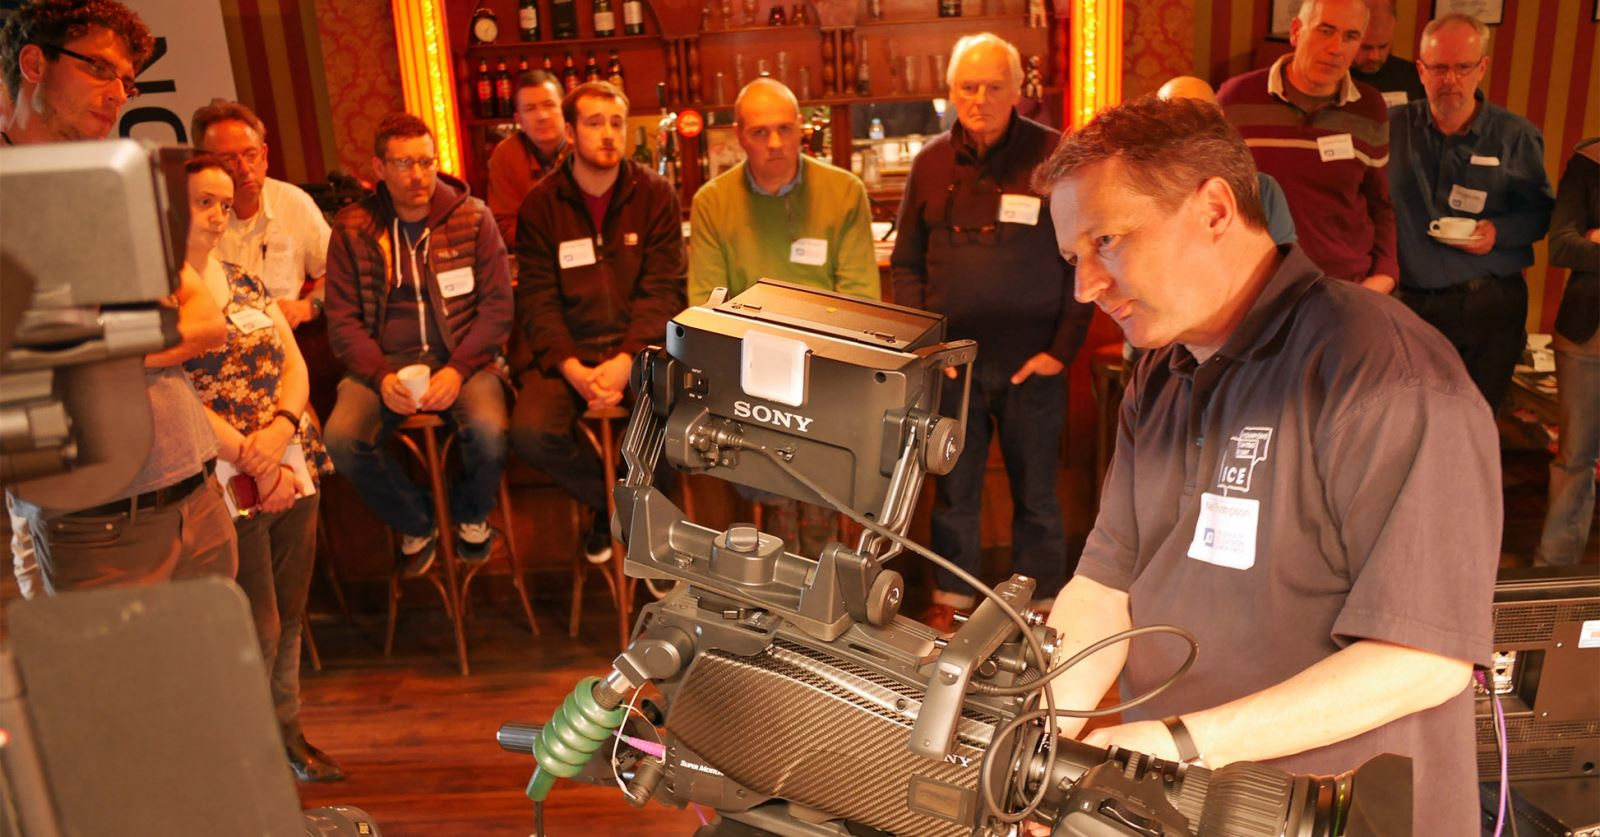 Neil Thompson demonstrating 4K, UHD and High Dynamic Range at the recent GTC workshop